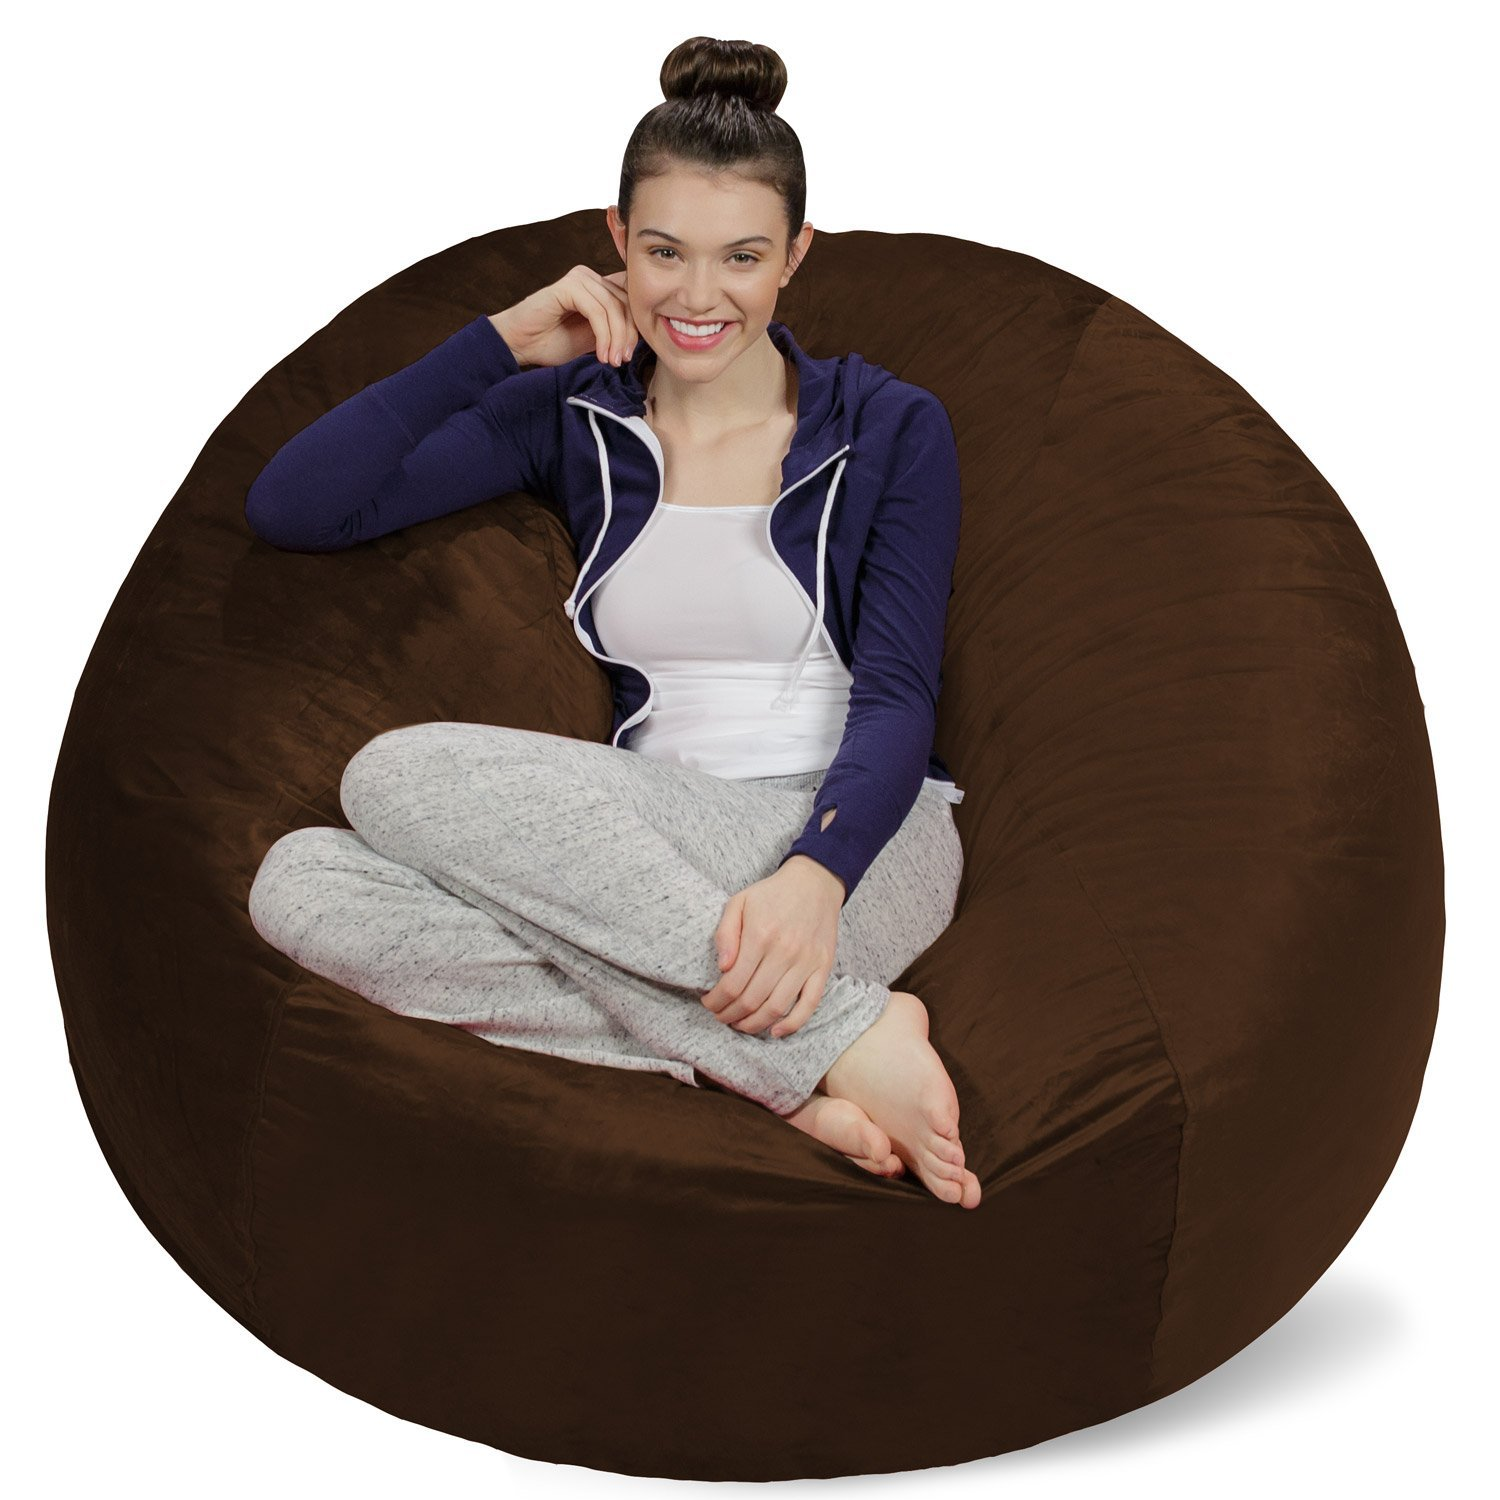 Woman Sitting On Bean Bag Chair